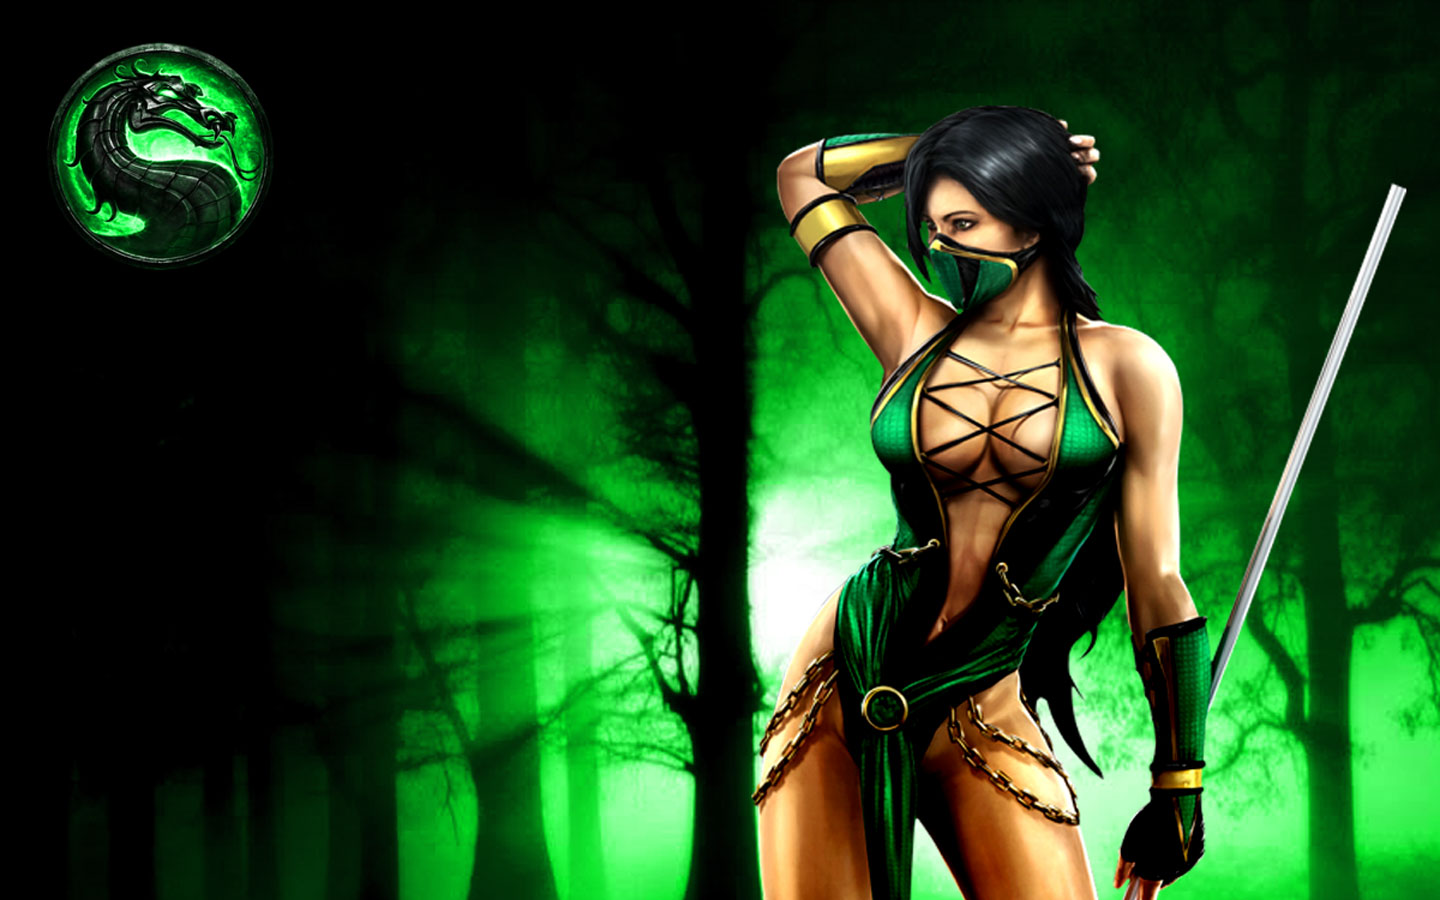 Mortal kombat HD & Widescreen Wallpaper 0.663411368307124